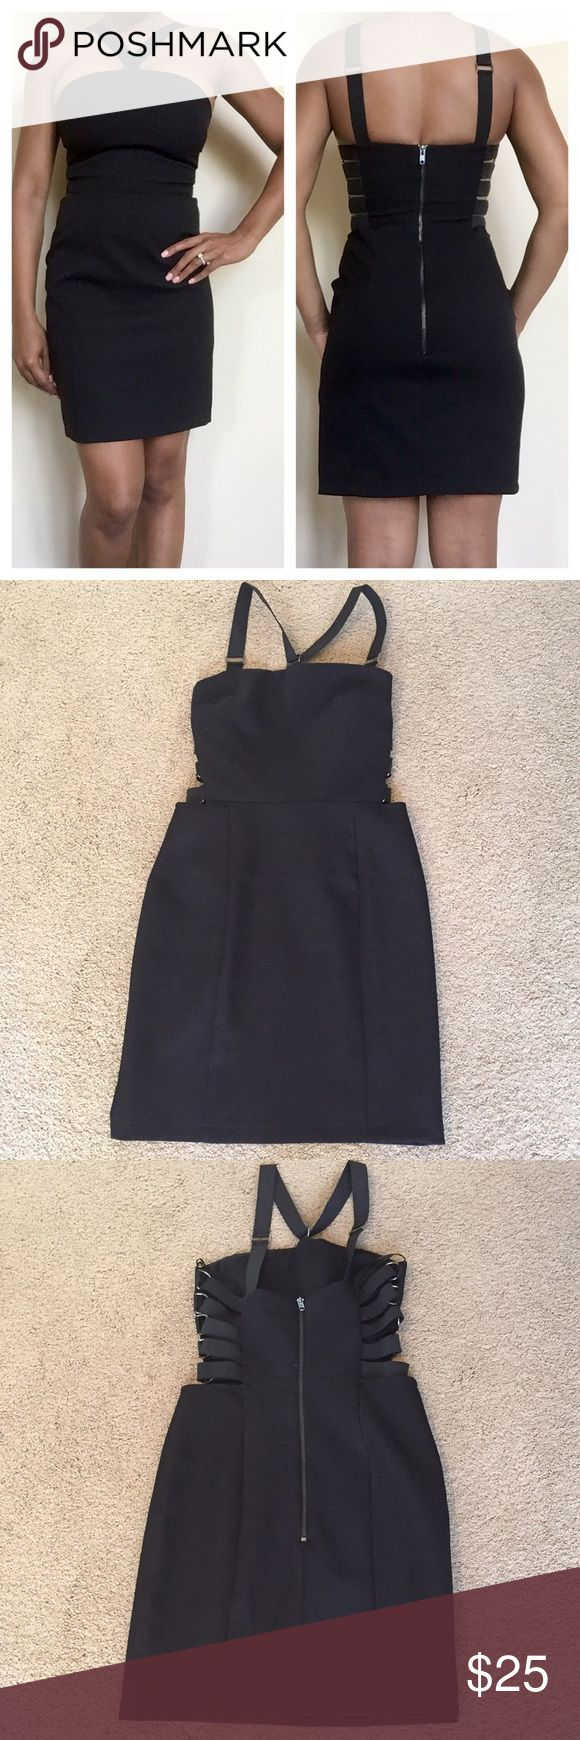 Topshop Black Bandage Dress Elastic on sides and halter top. Best for smaller bust (A or B) or ribcage. Perfect condition Topshop Dresses